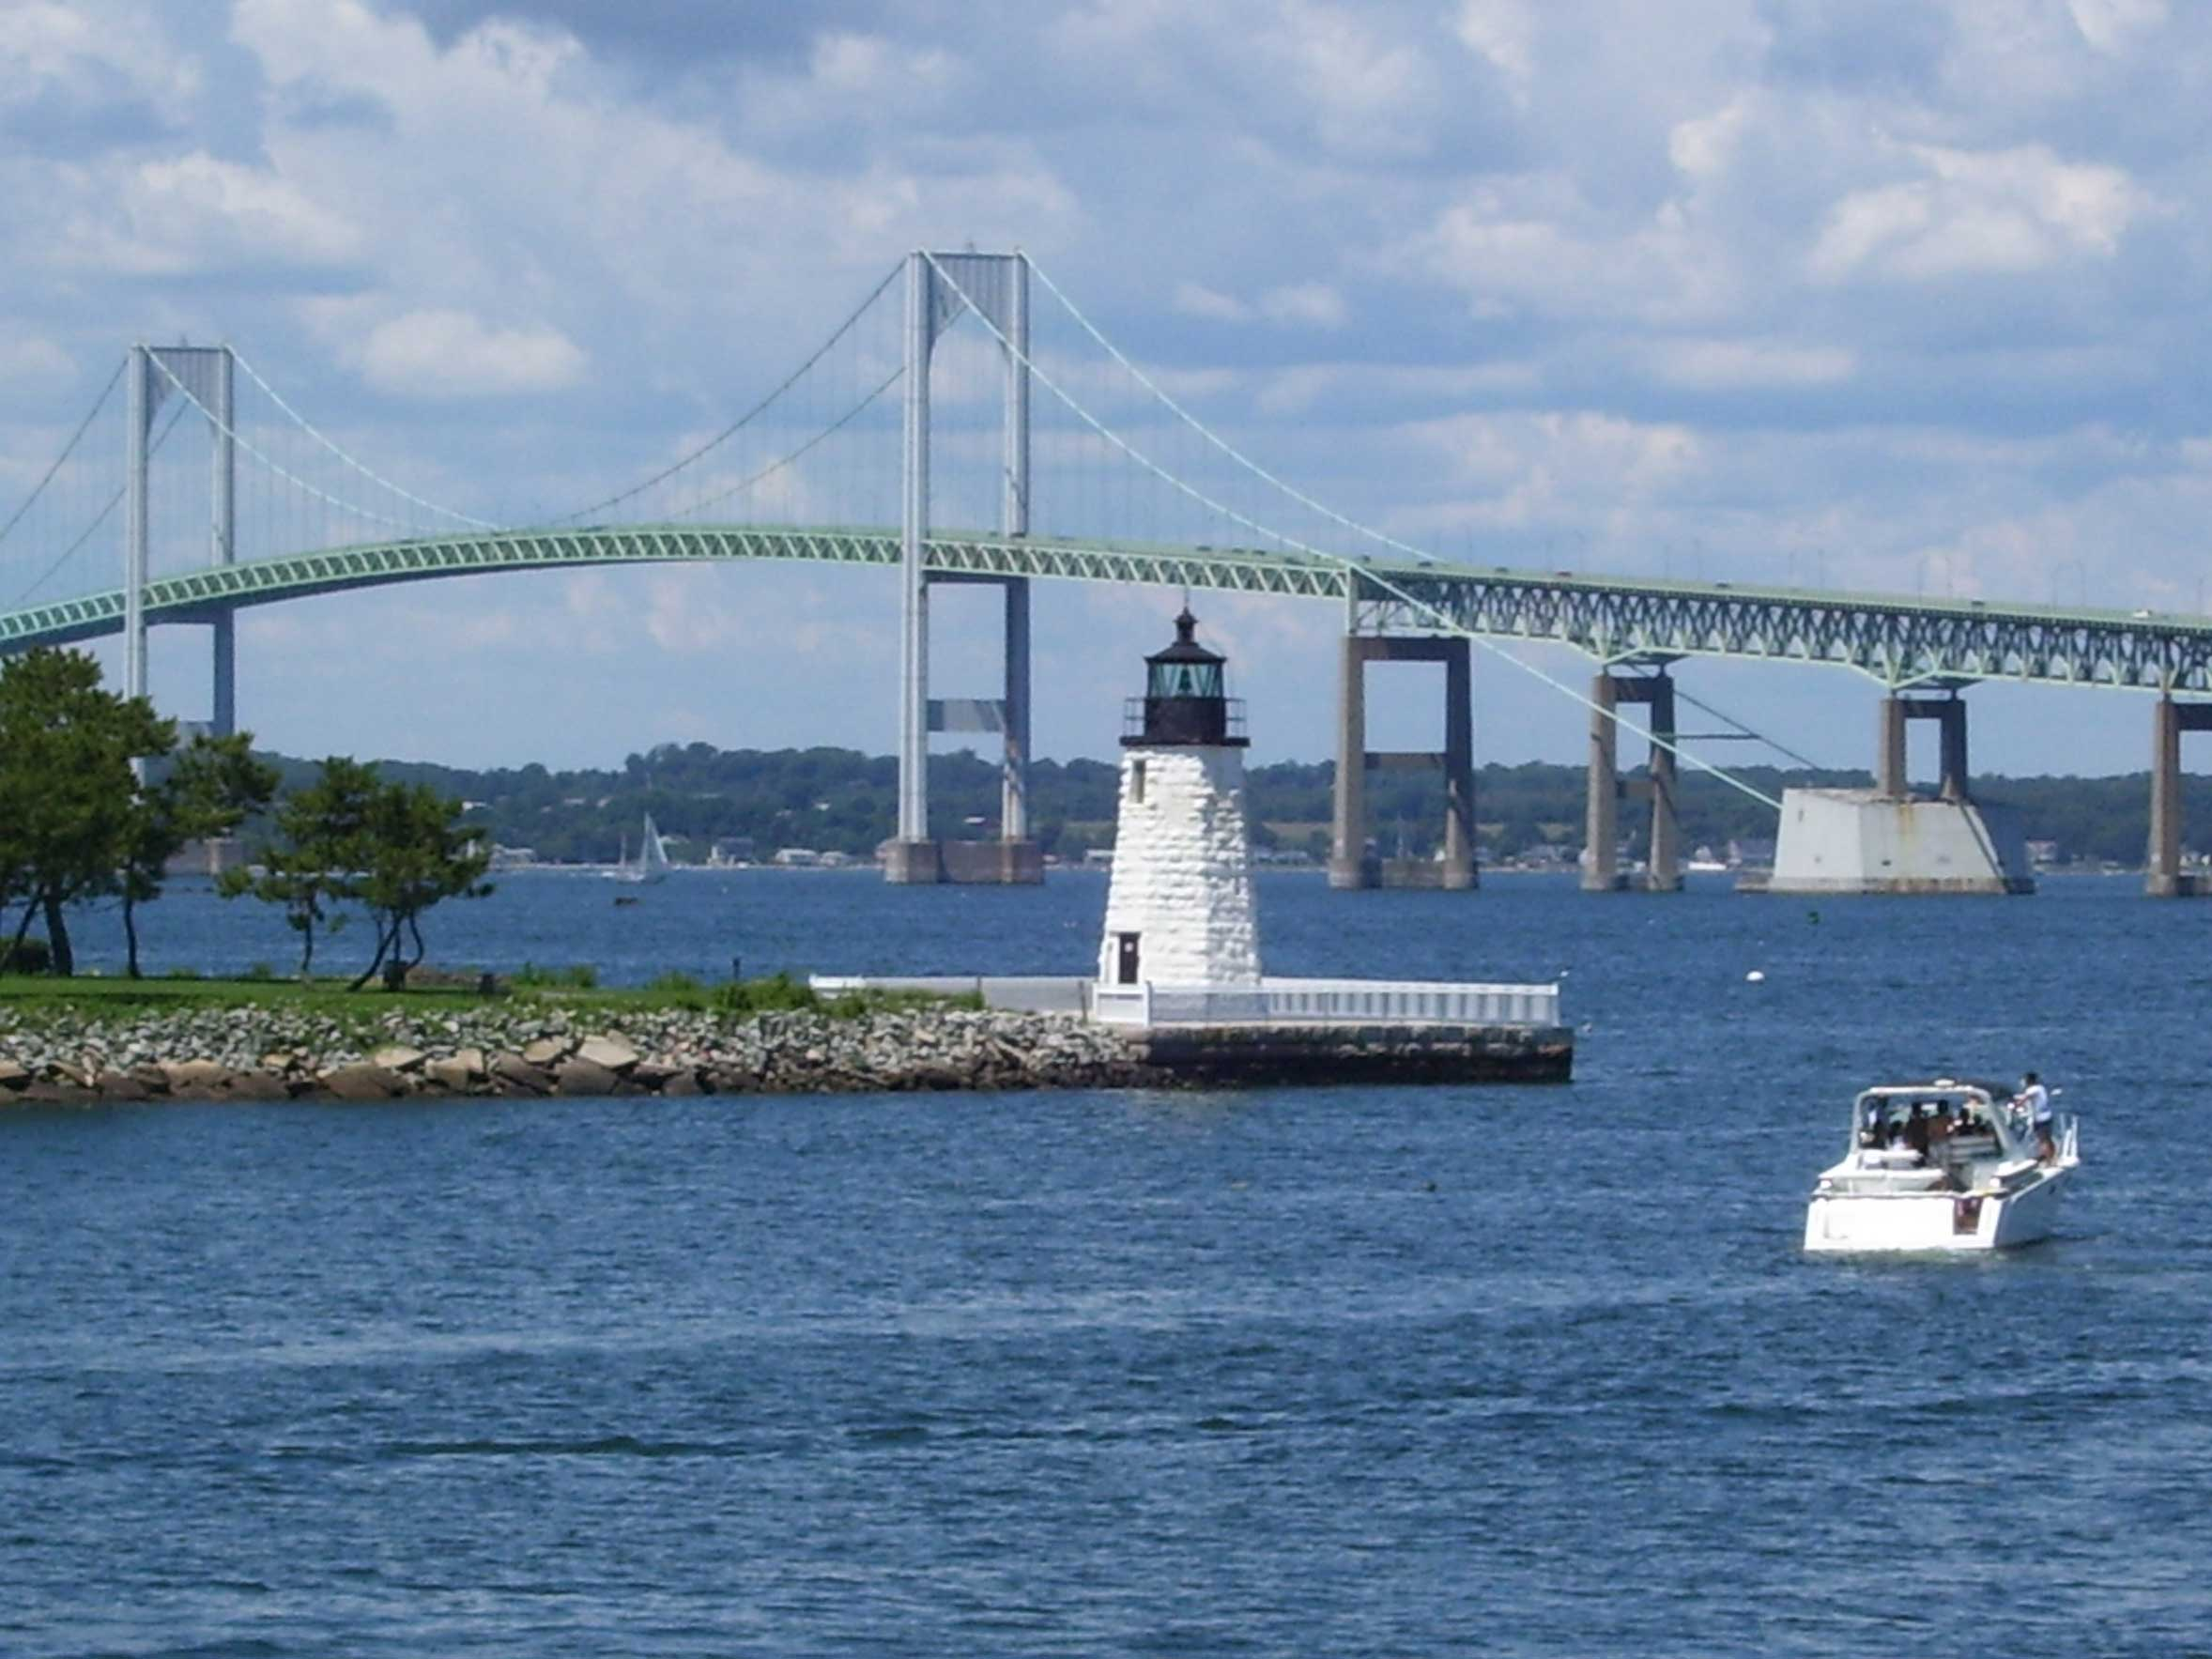 Photograph of the Newport harbor with a lighthouse and Newport bridge in the background